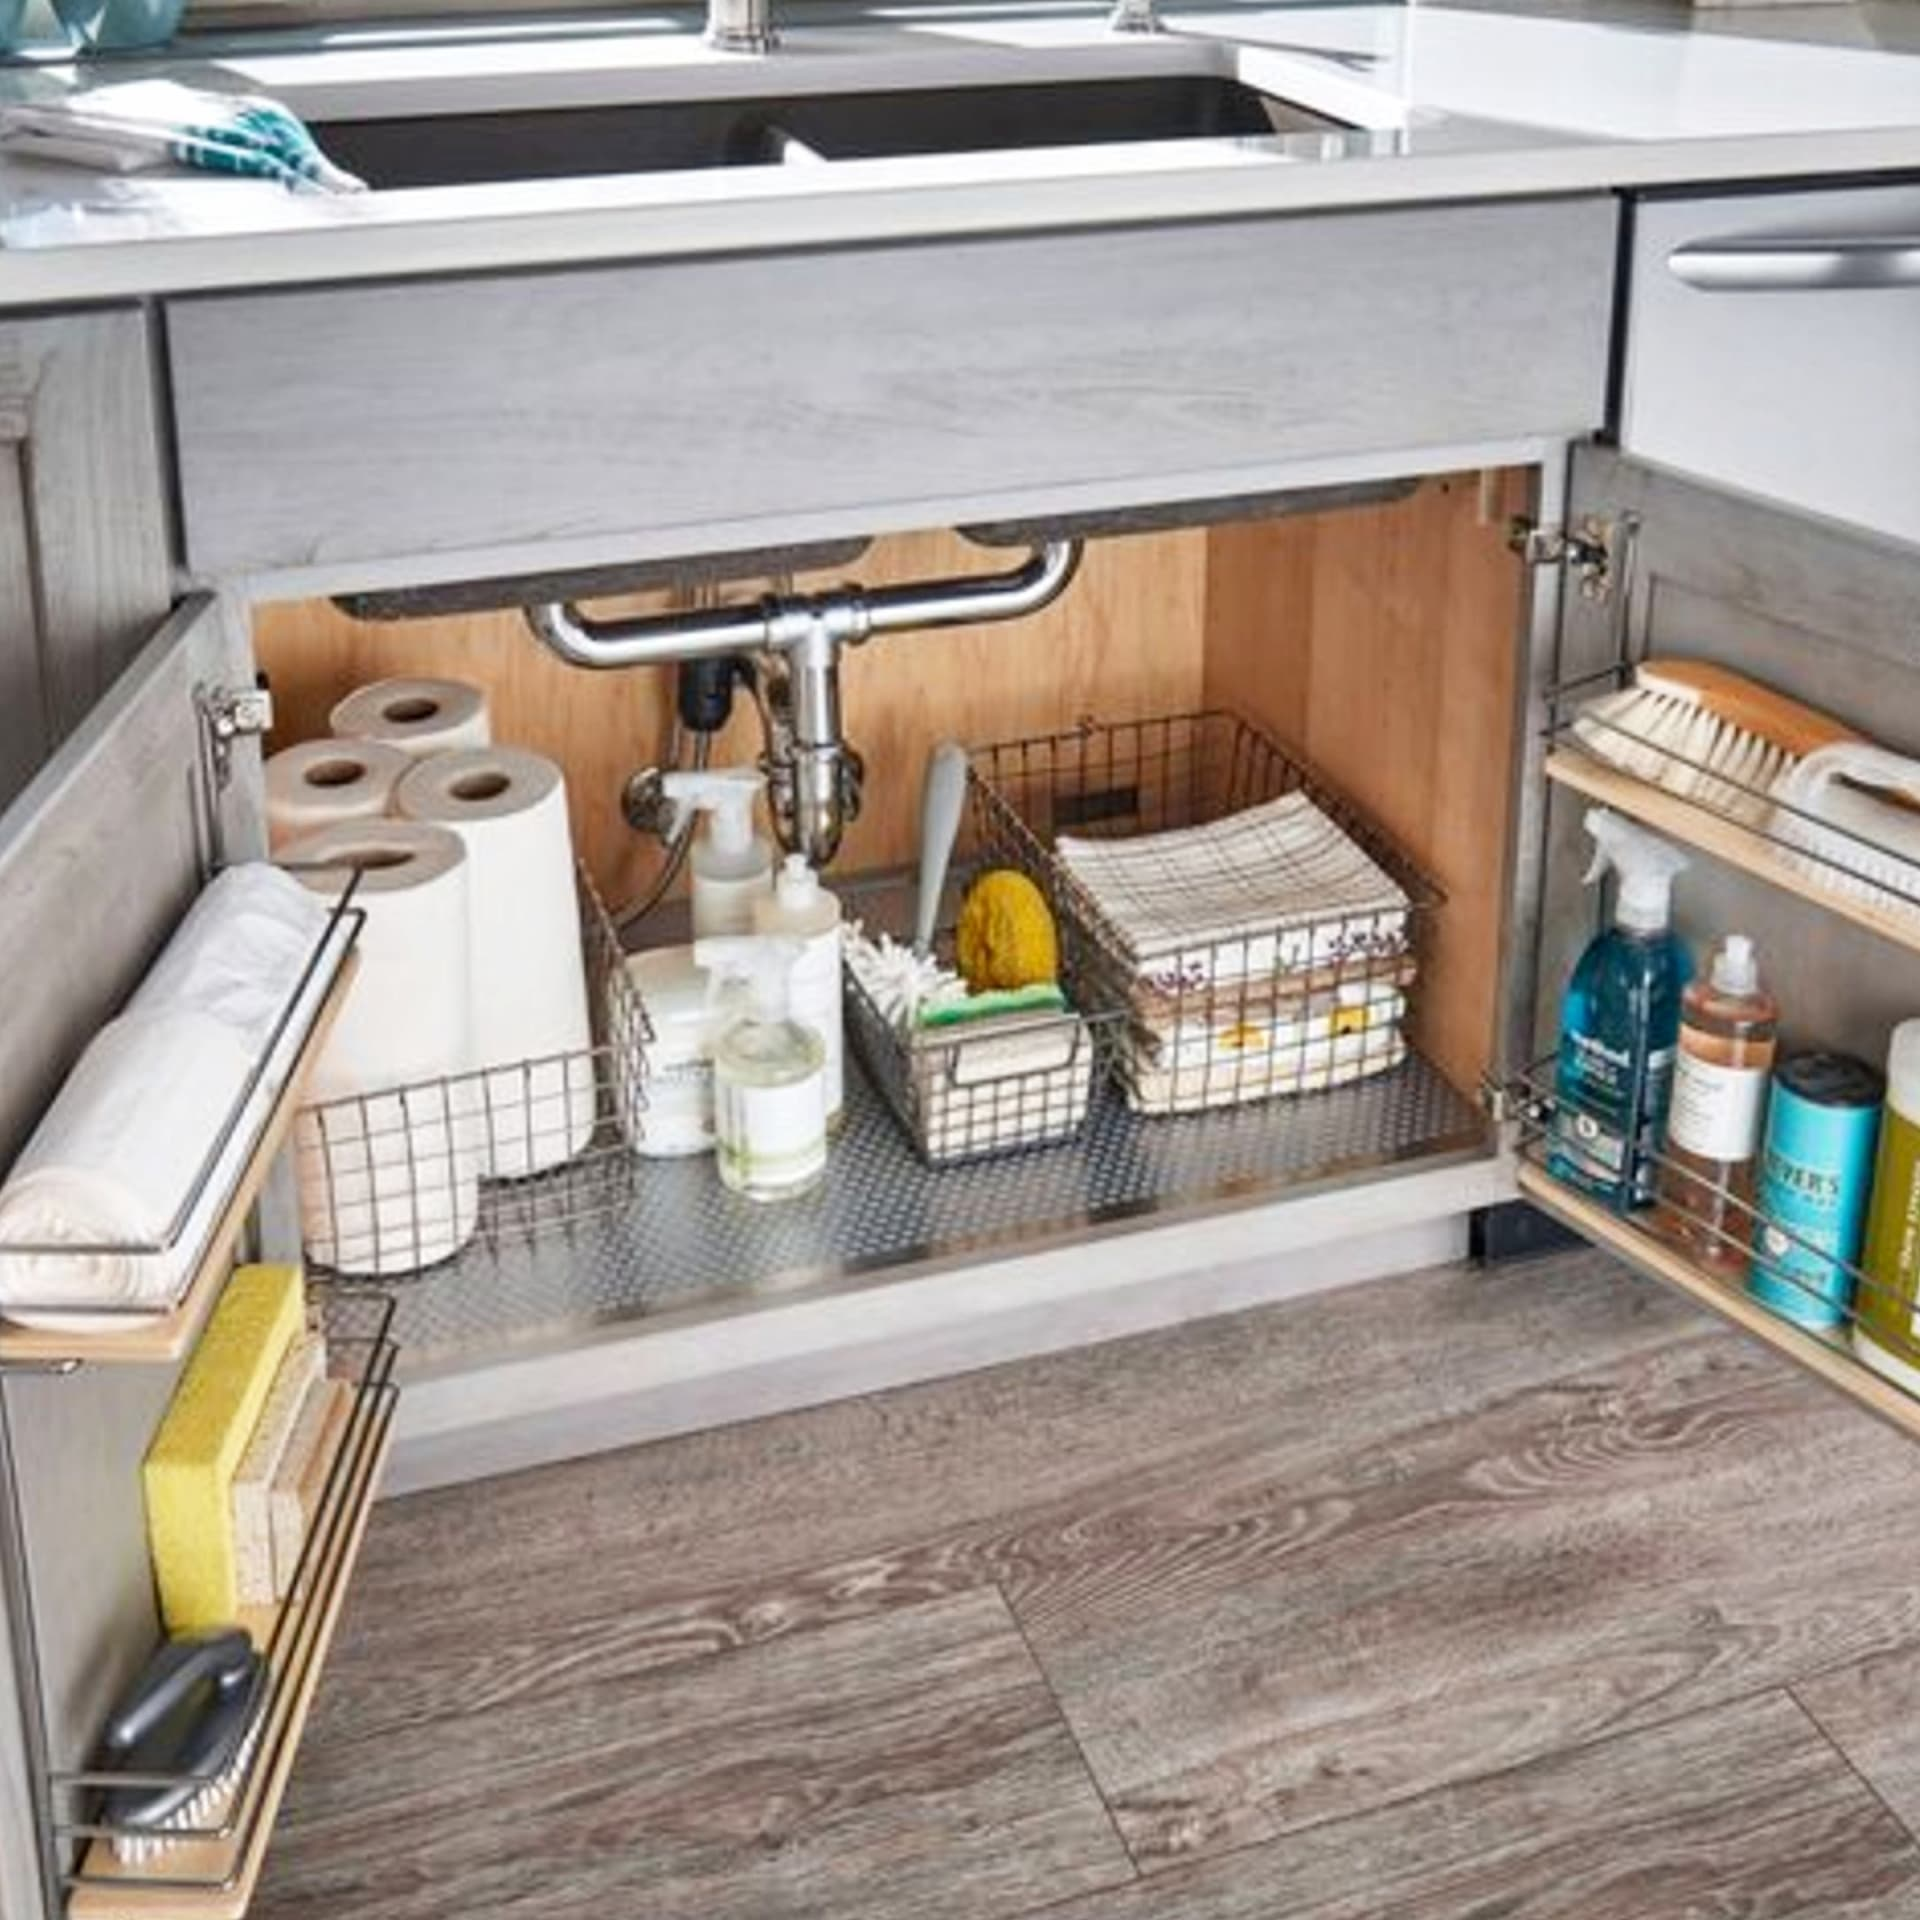 kitchen clutter solutions - declutter kitchen cabinets and organize under kitchen sink for an uncluttered kitchen on a budget